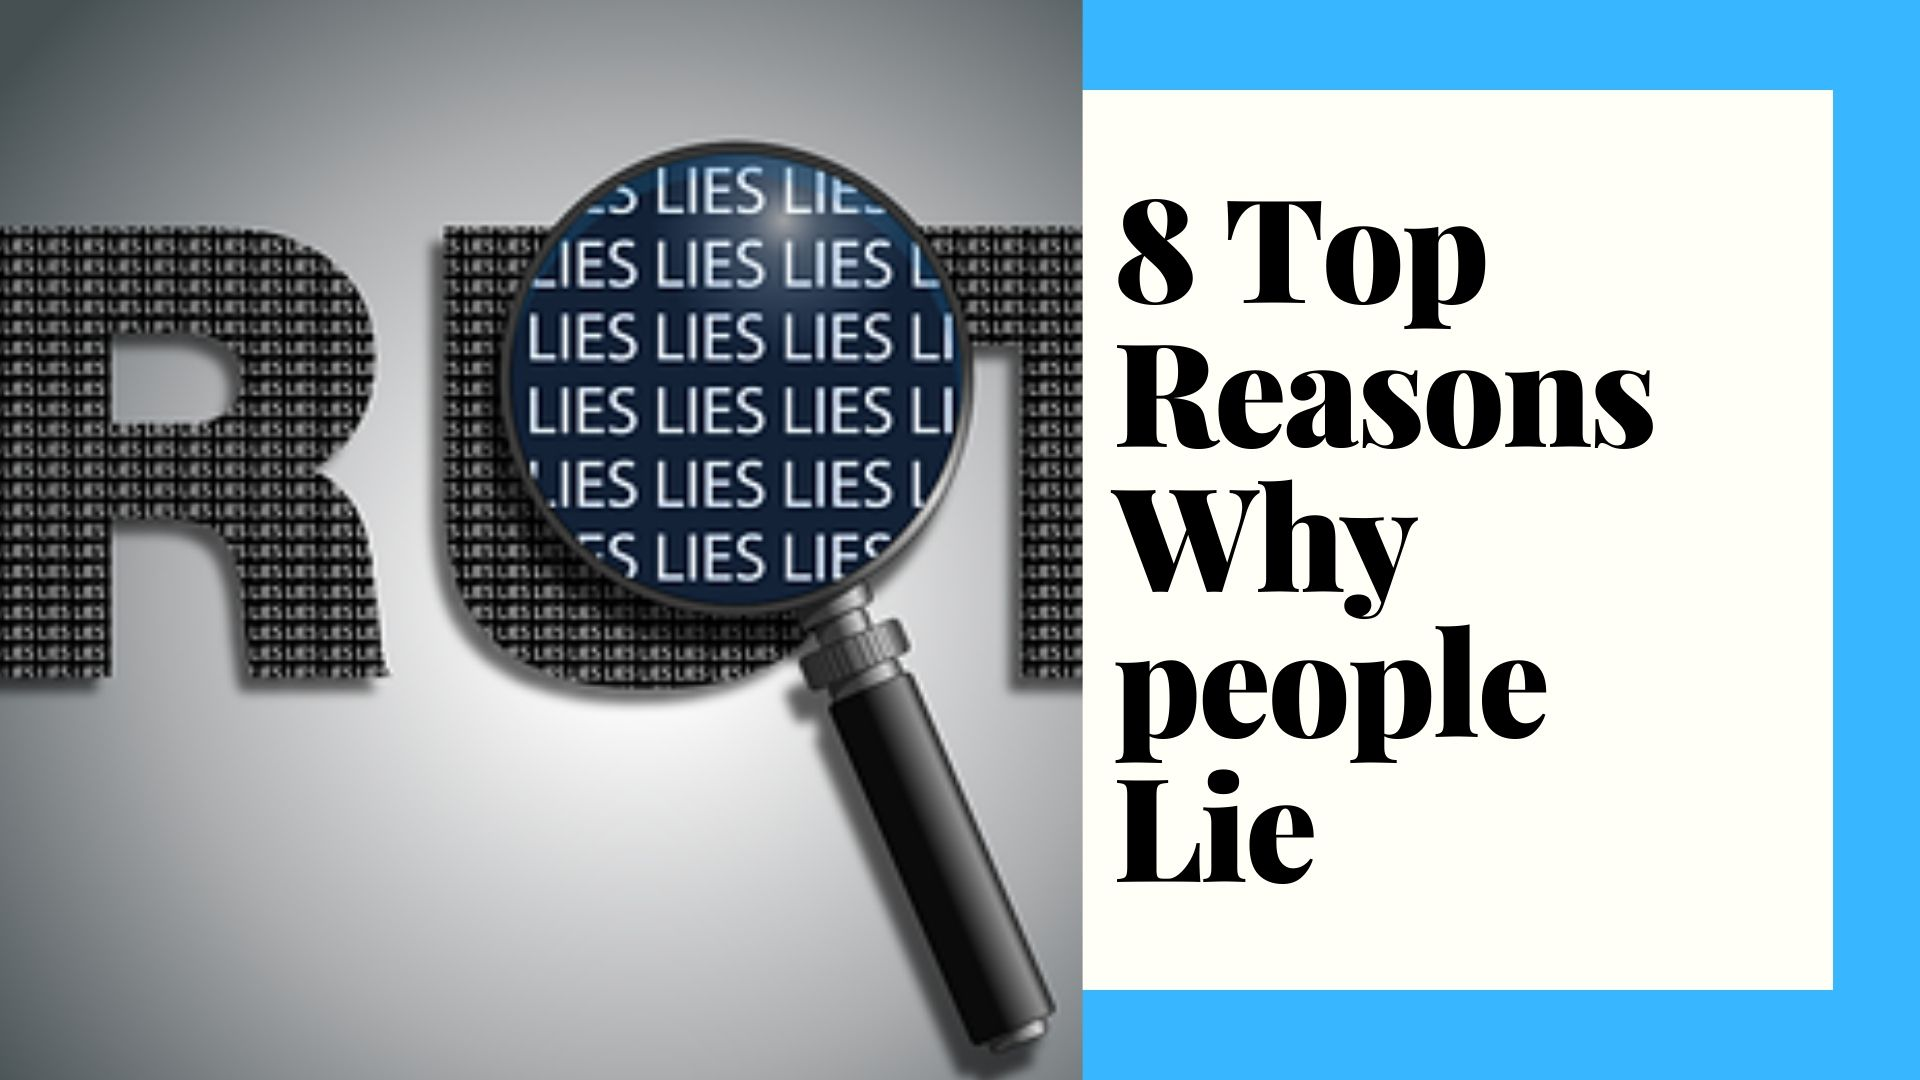 Why Do People Lie? 8 Top Reasons why People Lie